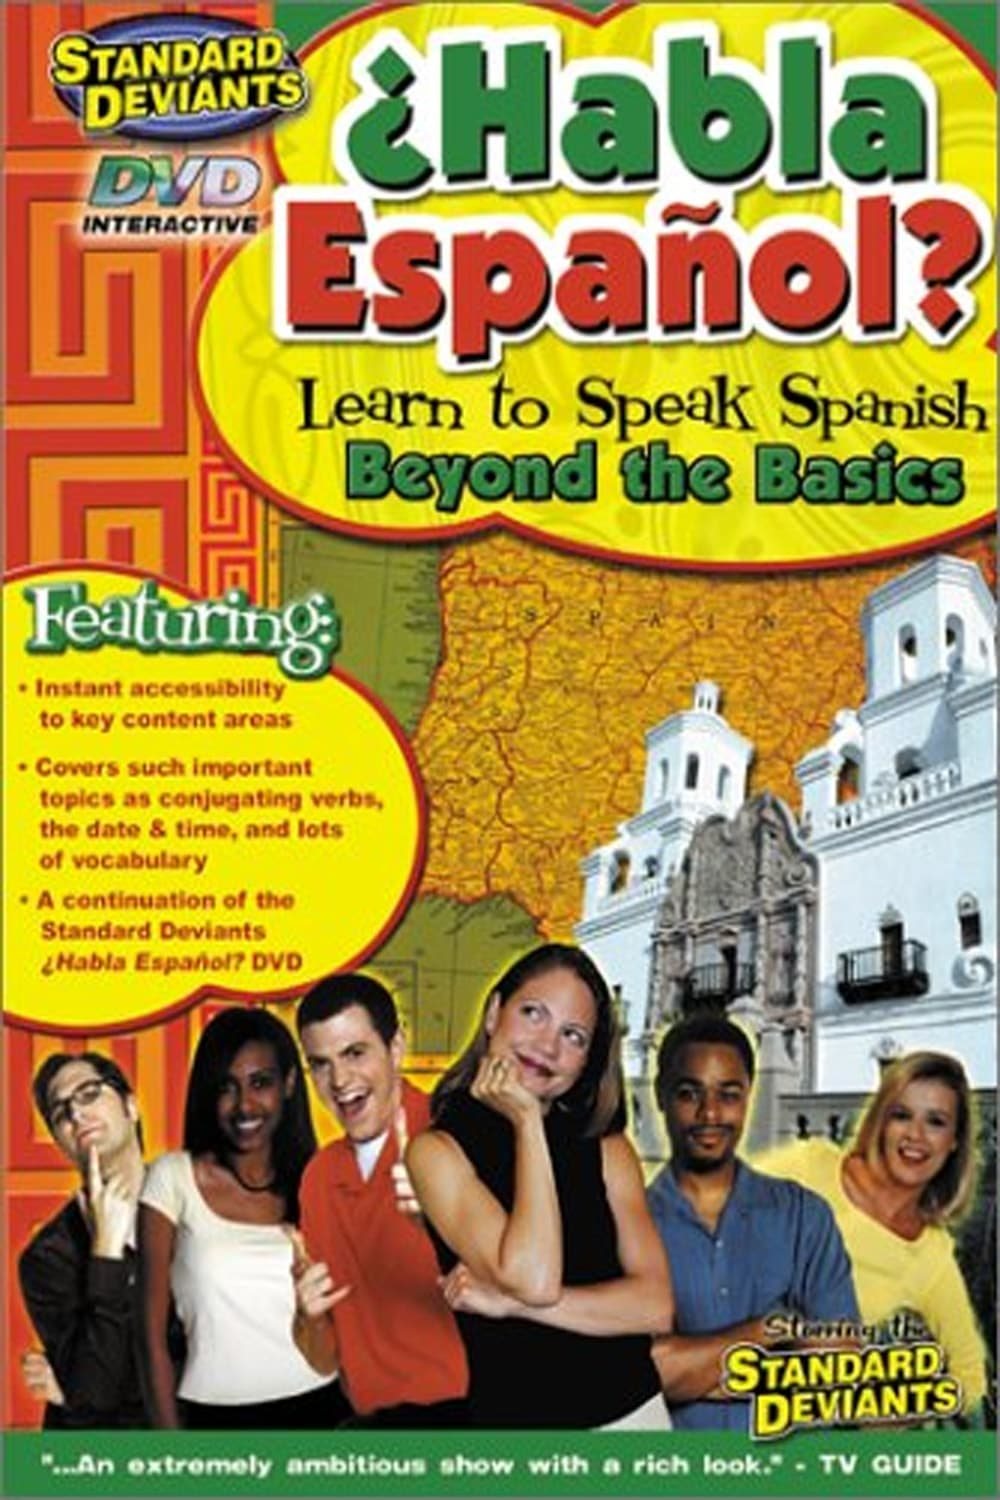 Habla Espanol: Beyond the Basics: The Standard Deviants (1997)